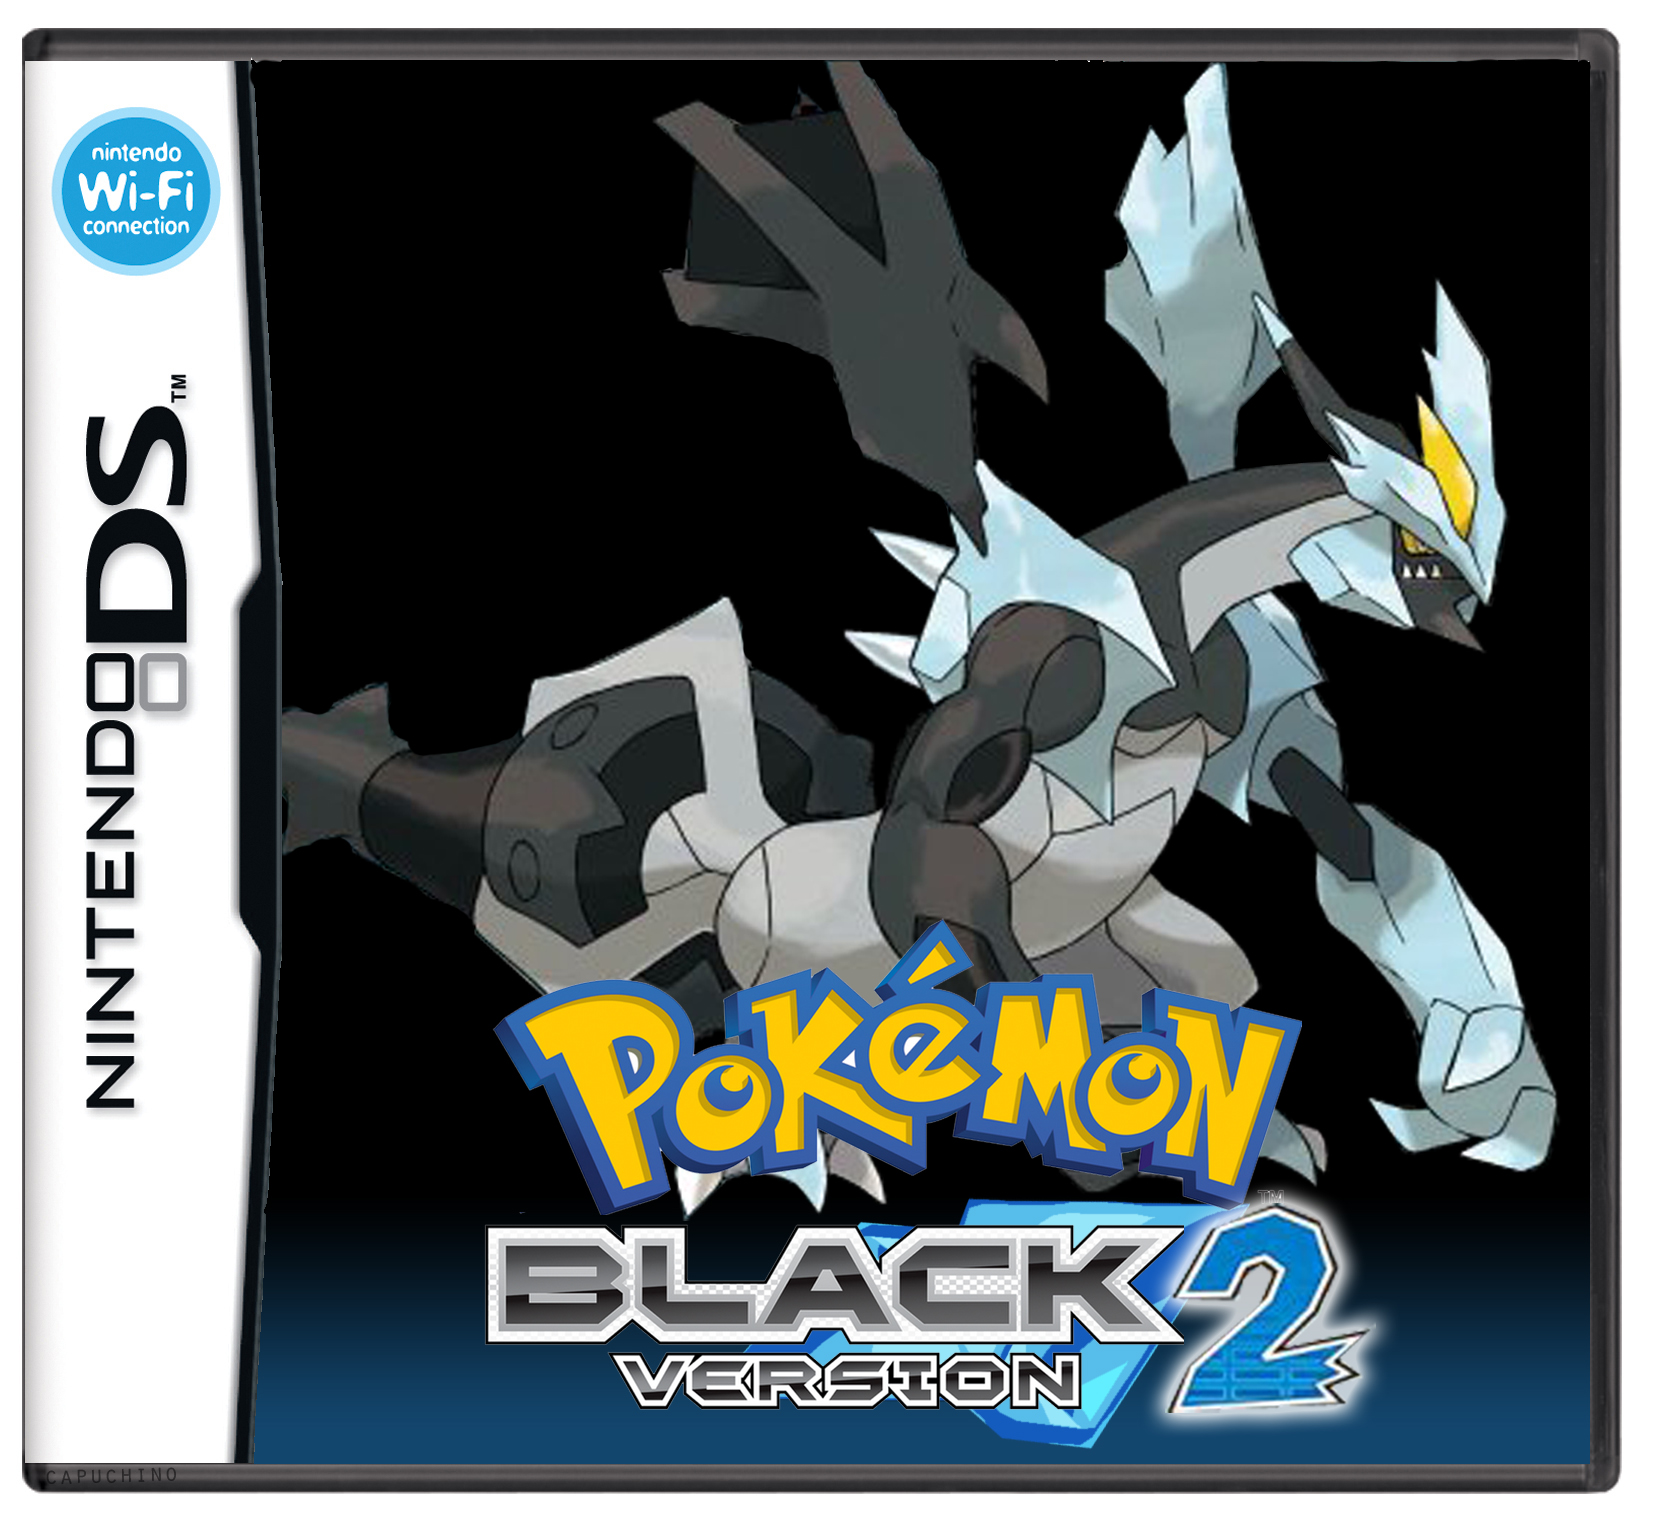 Will there be a new pokemon game after black and white 2 bluechip casino hotel indiana